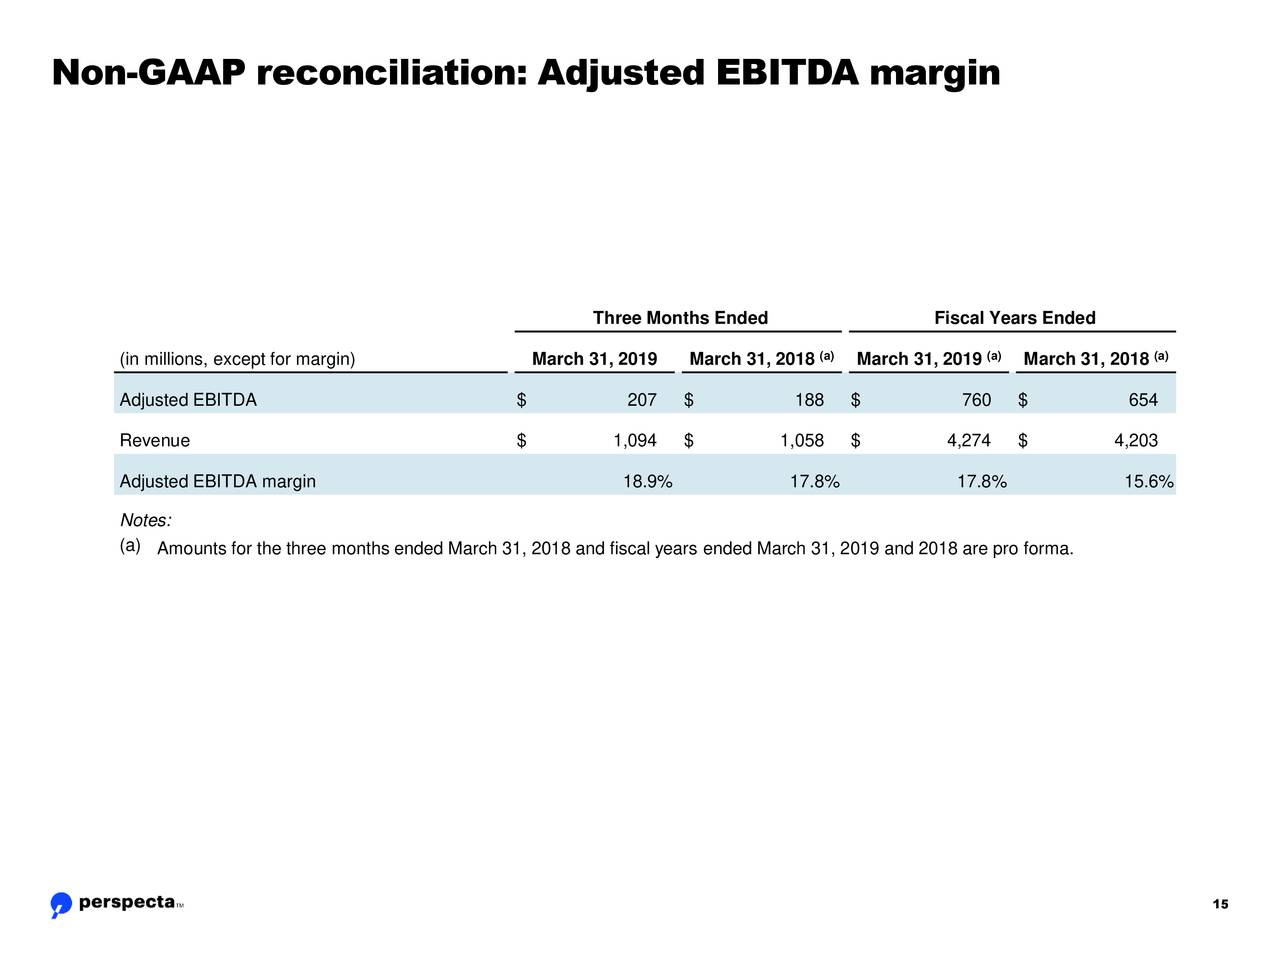 Three Months Ended Fiscal Years Ended (a) (a) (a) (in millions, except for margin) March 31, 2019 March 31, 2018 March 31, 2019 March 31, 2018 Adjusted EBITDA $ 207 $ 188 $ 760 $ 654 Revenue $ 1,094 $ 1,058 $ 4,274 $ 4,203 Adjusted EBITDA margin 18.9% 17.8% 17.8% 15.6% Notes: (a) Amounts for the three months ended March 31, 2018 and fiscal years ended March 31, 2019 and 2018 are pro forma. 15